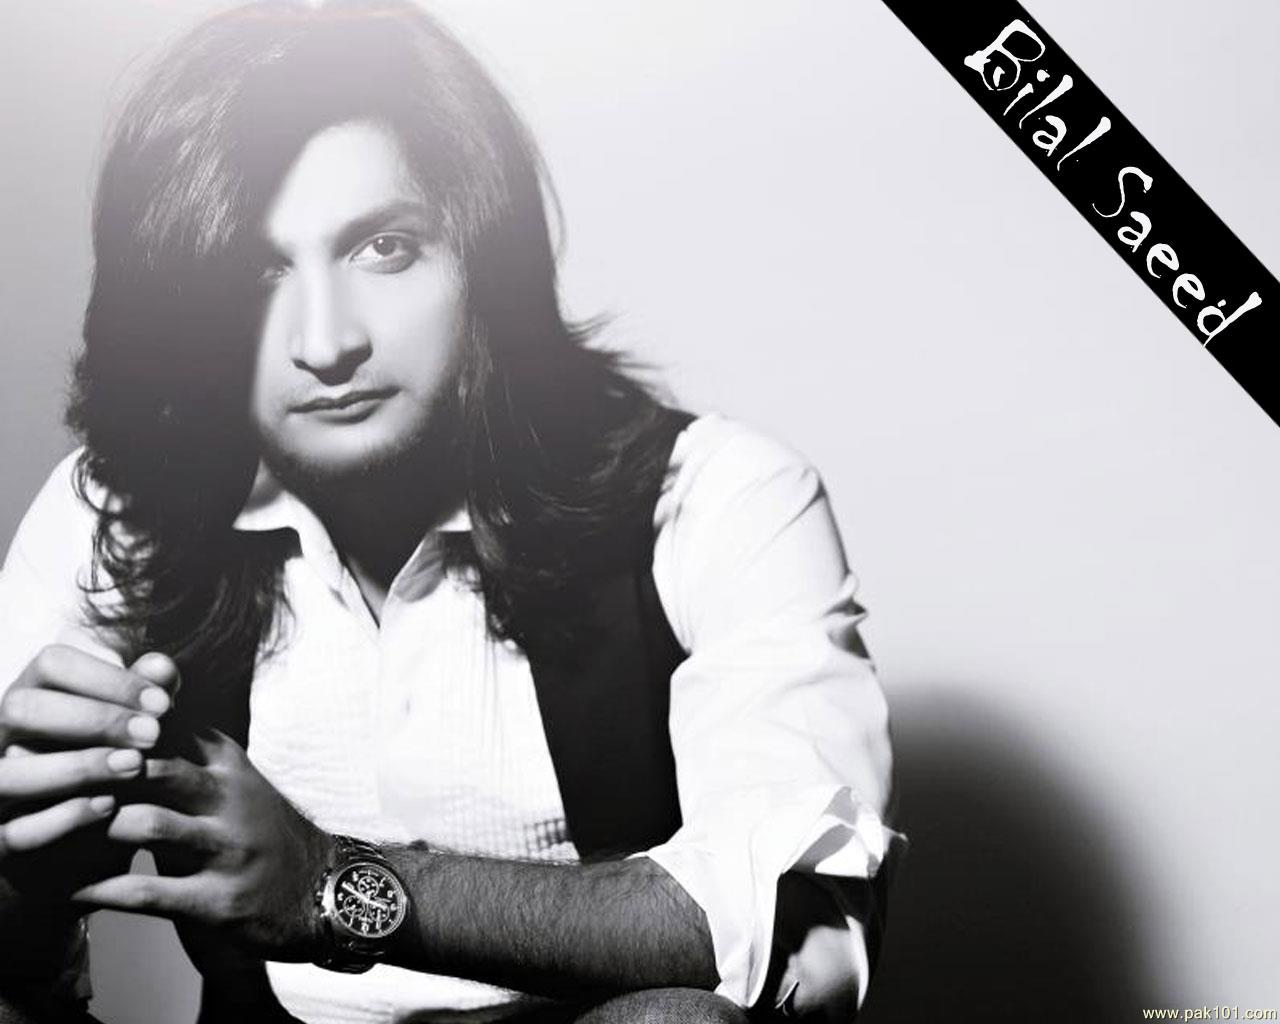 Memories - Bilal Saeed